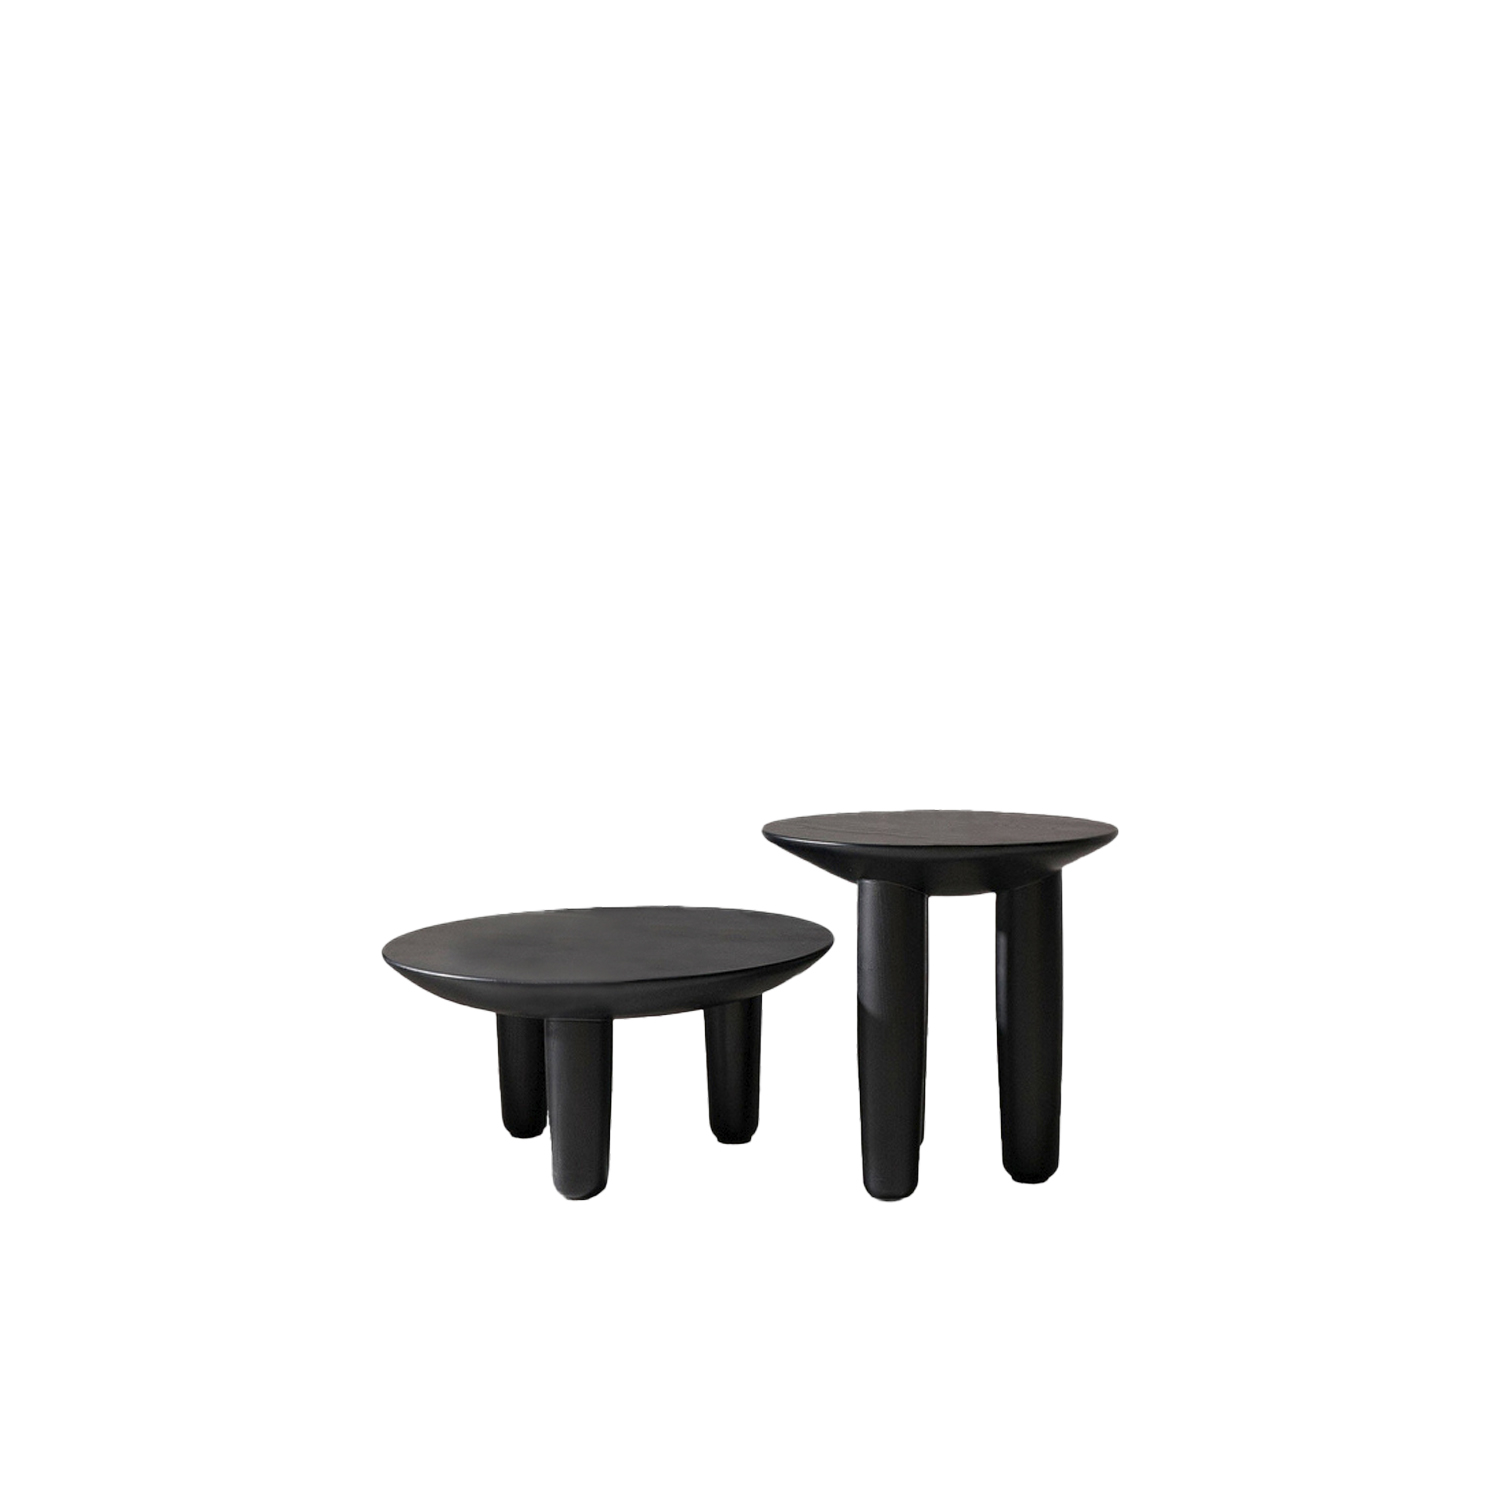 "HRYB set of Coffee tables - ""Hryb"" in Ukrainian means mushroom. After the rain in Polesia, just got out of the ground this small wooden coffee table on 3 legs, on which has already settled comfortably your cup of sweet-smelling coffee.This is a set of both coffee tables however they are also available to purchase separately. 